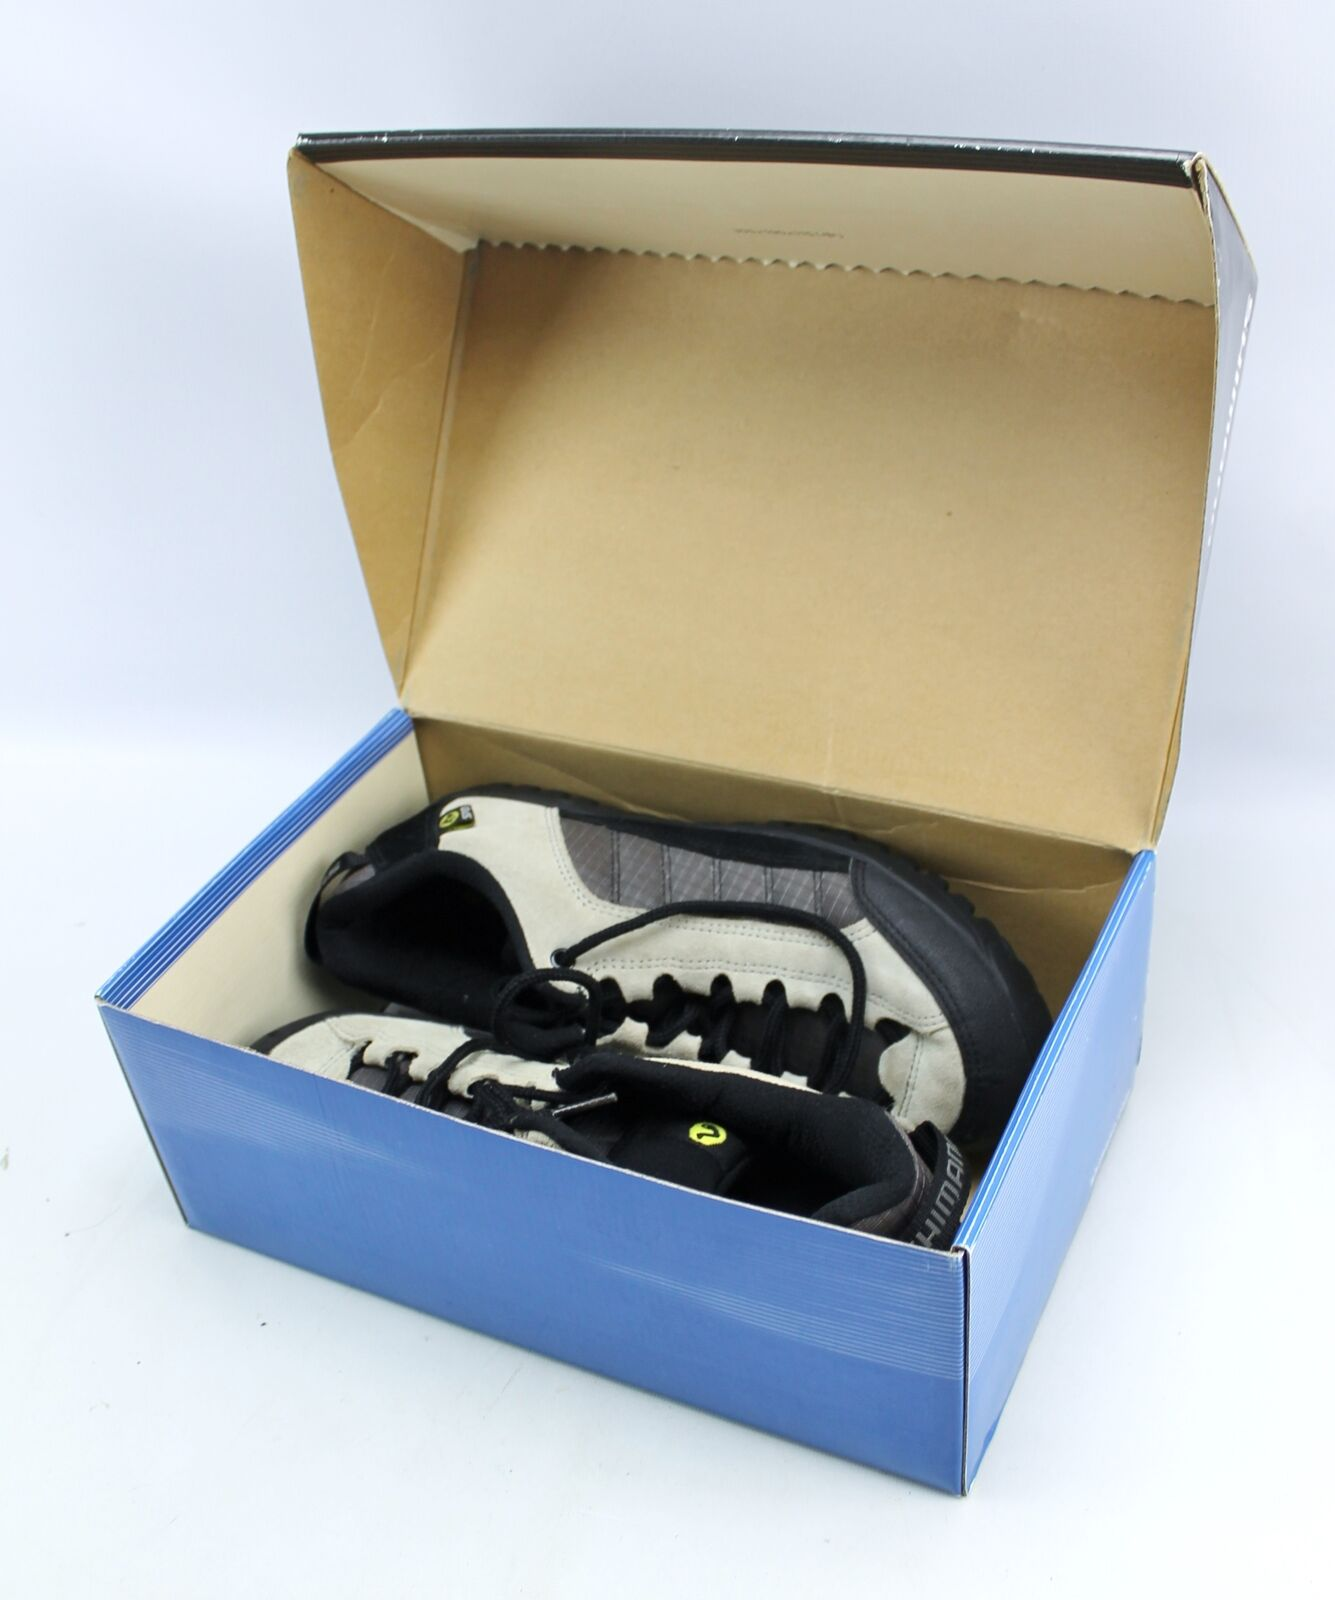 Shimano Khaki Charcoal  2 Bolt SPD Cycling shoes SH-M034 US 8.5  wholesale cheap and high quality